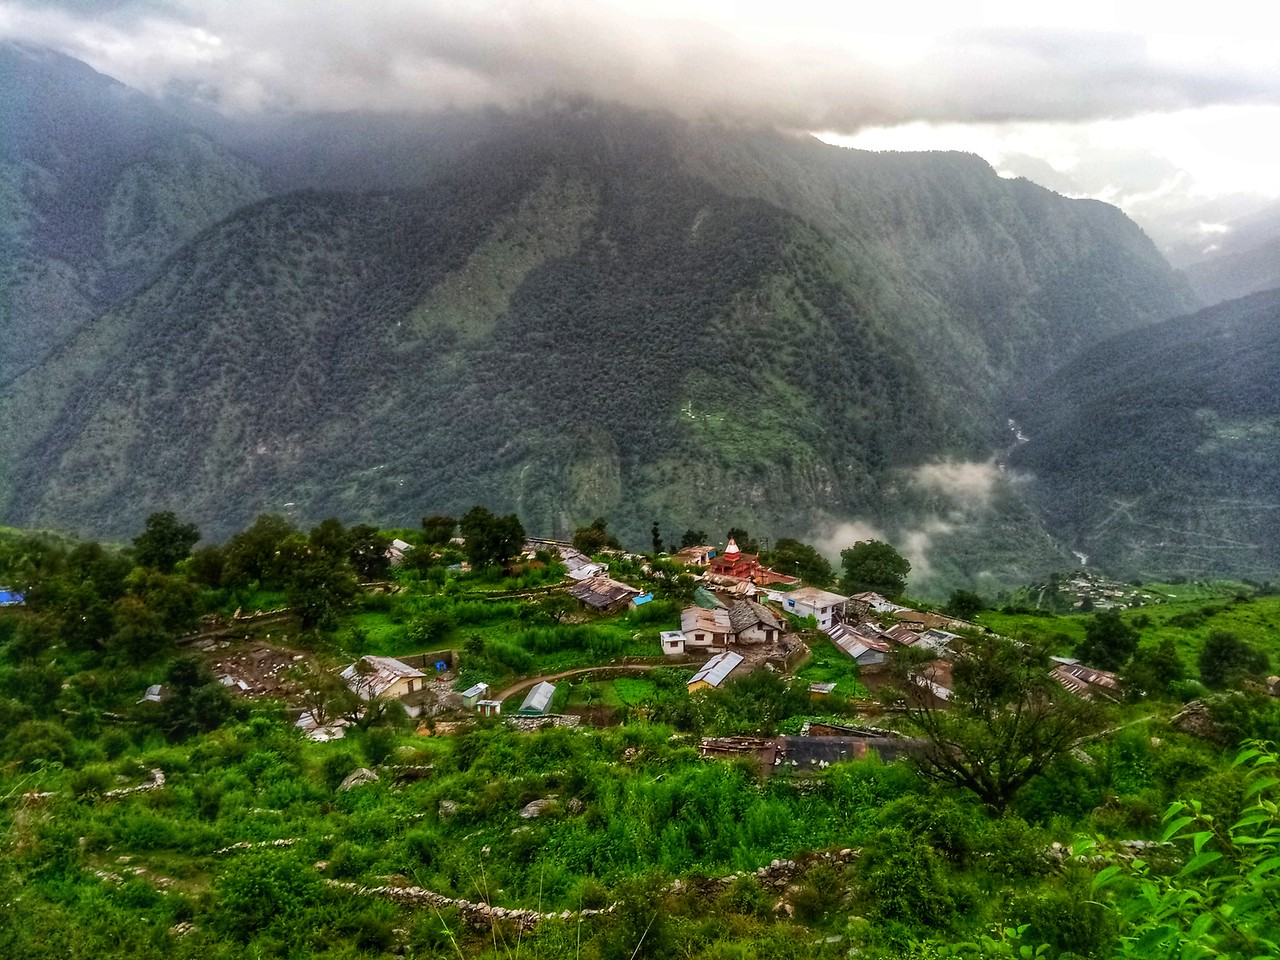 A typical village in the Garhwal Himalayas of Uttarakhand